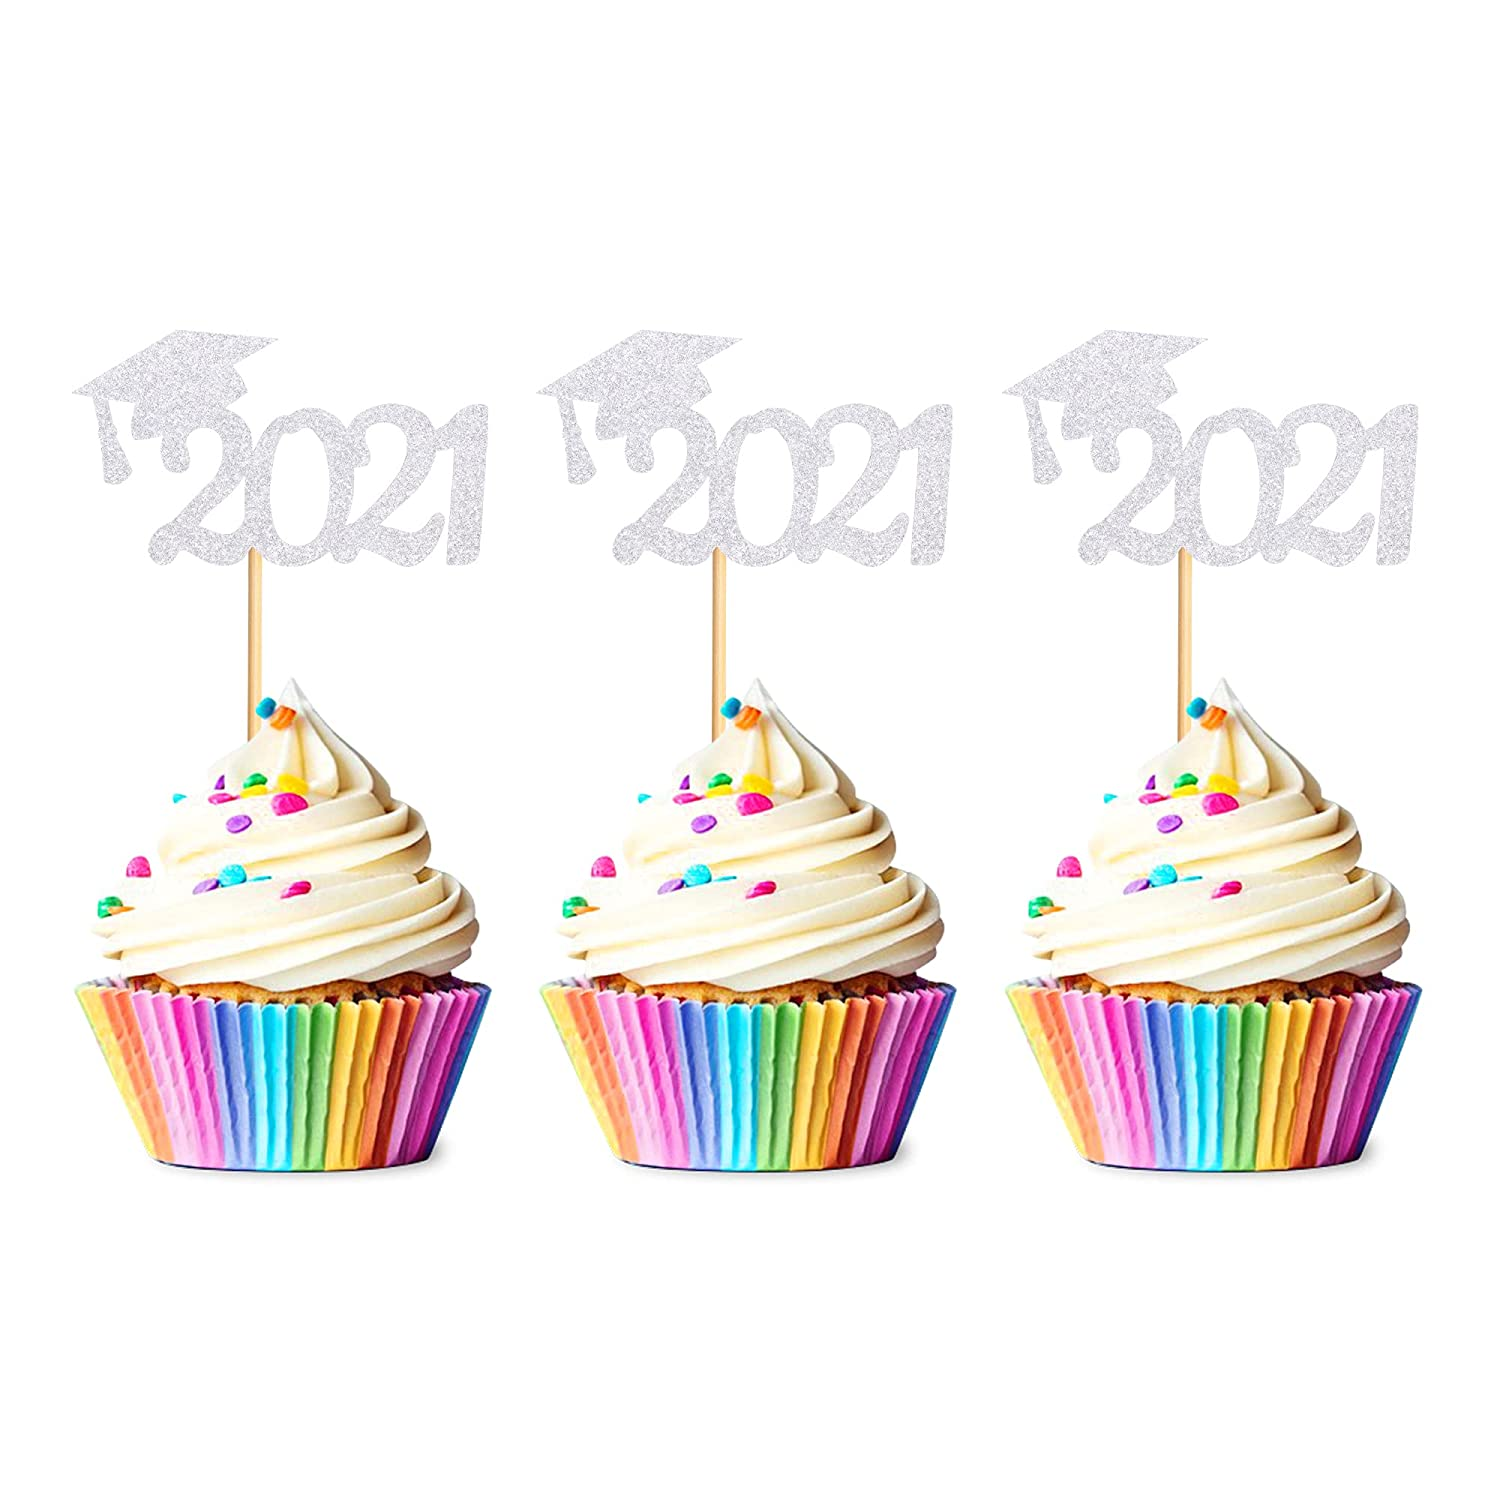 Unimall Pack of 48 2021 Grad Cap Graduation Cupcake Toppers, Silver Glitter Graduate Food/Appetizer Picks For Graduation Party Mini Cake Decorations